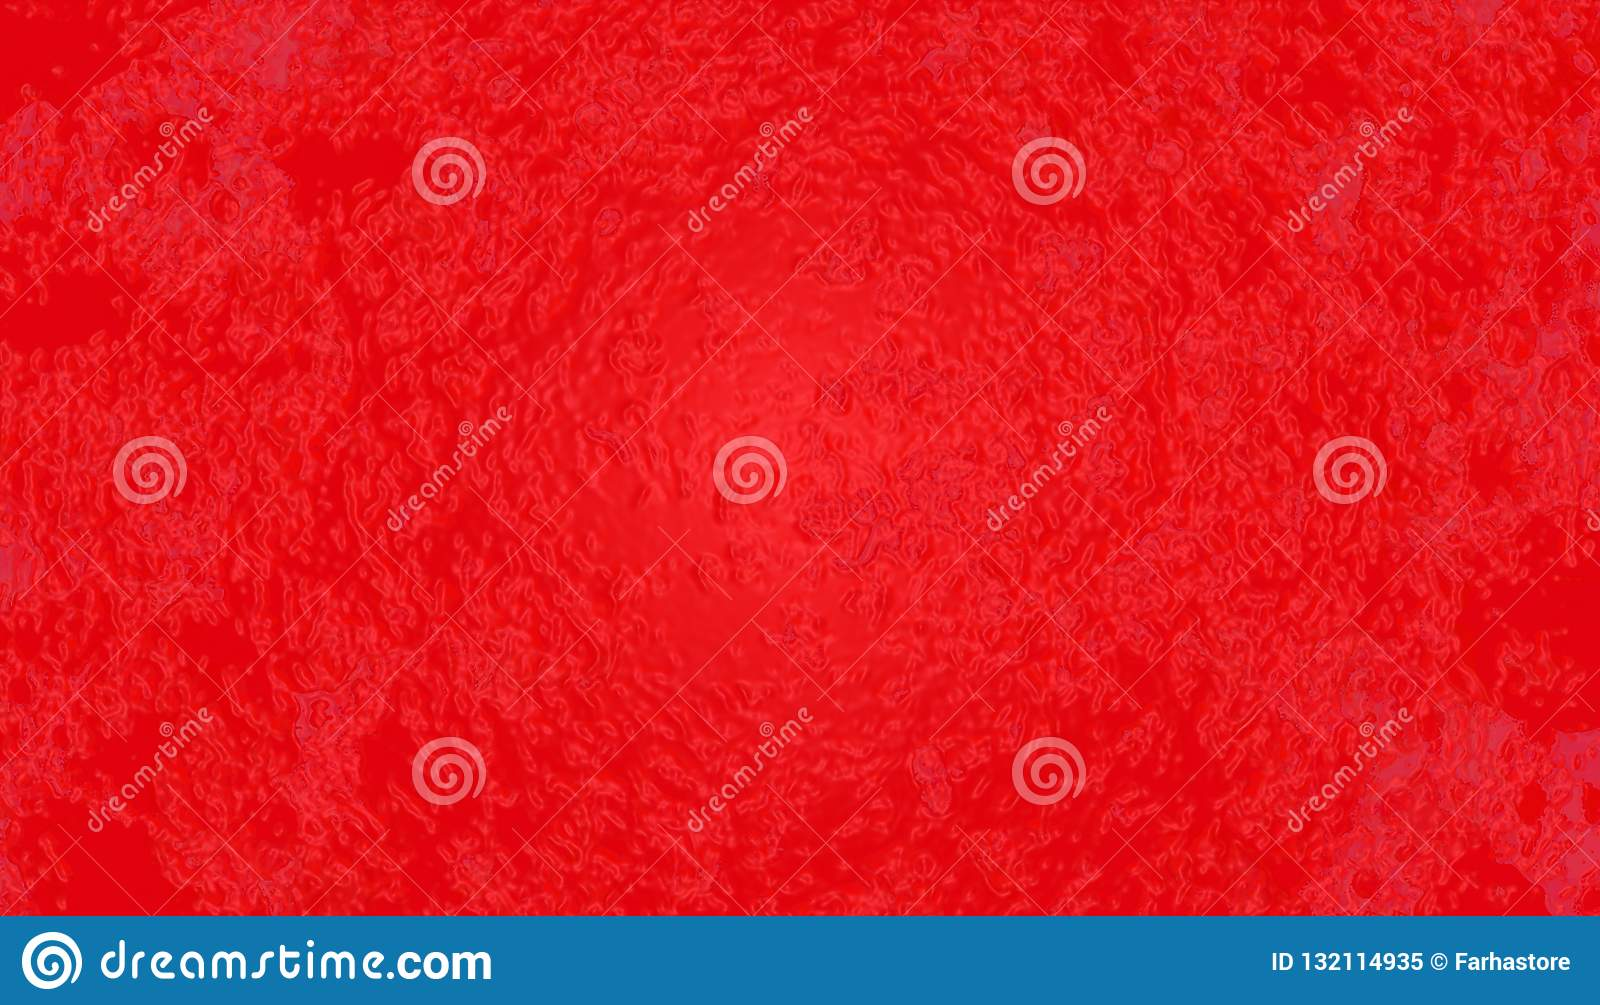 Red Abstract colorful pattern background design. Greeting card design and gift cards.